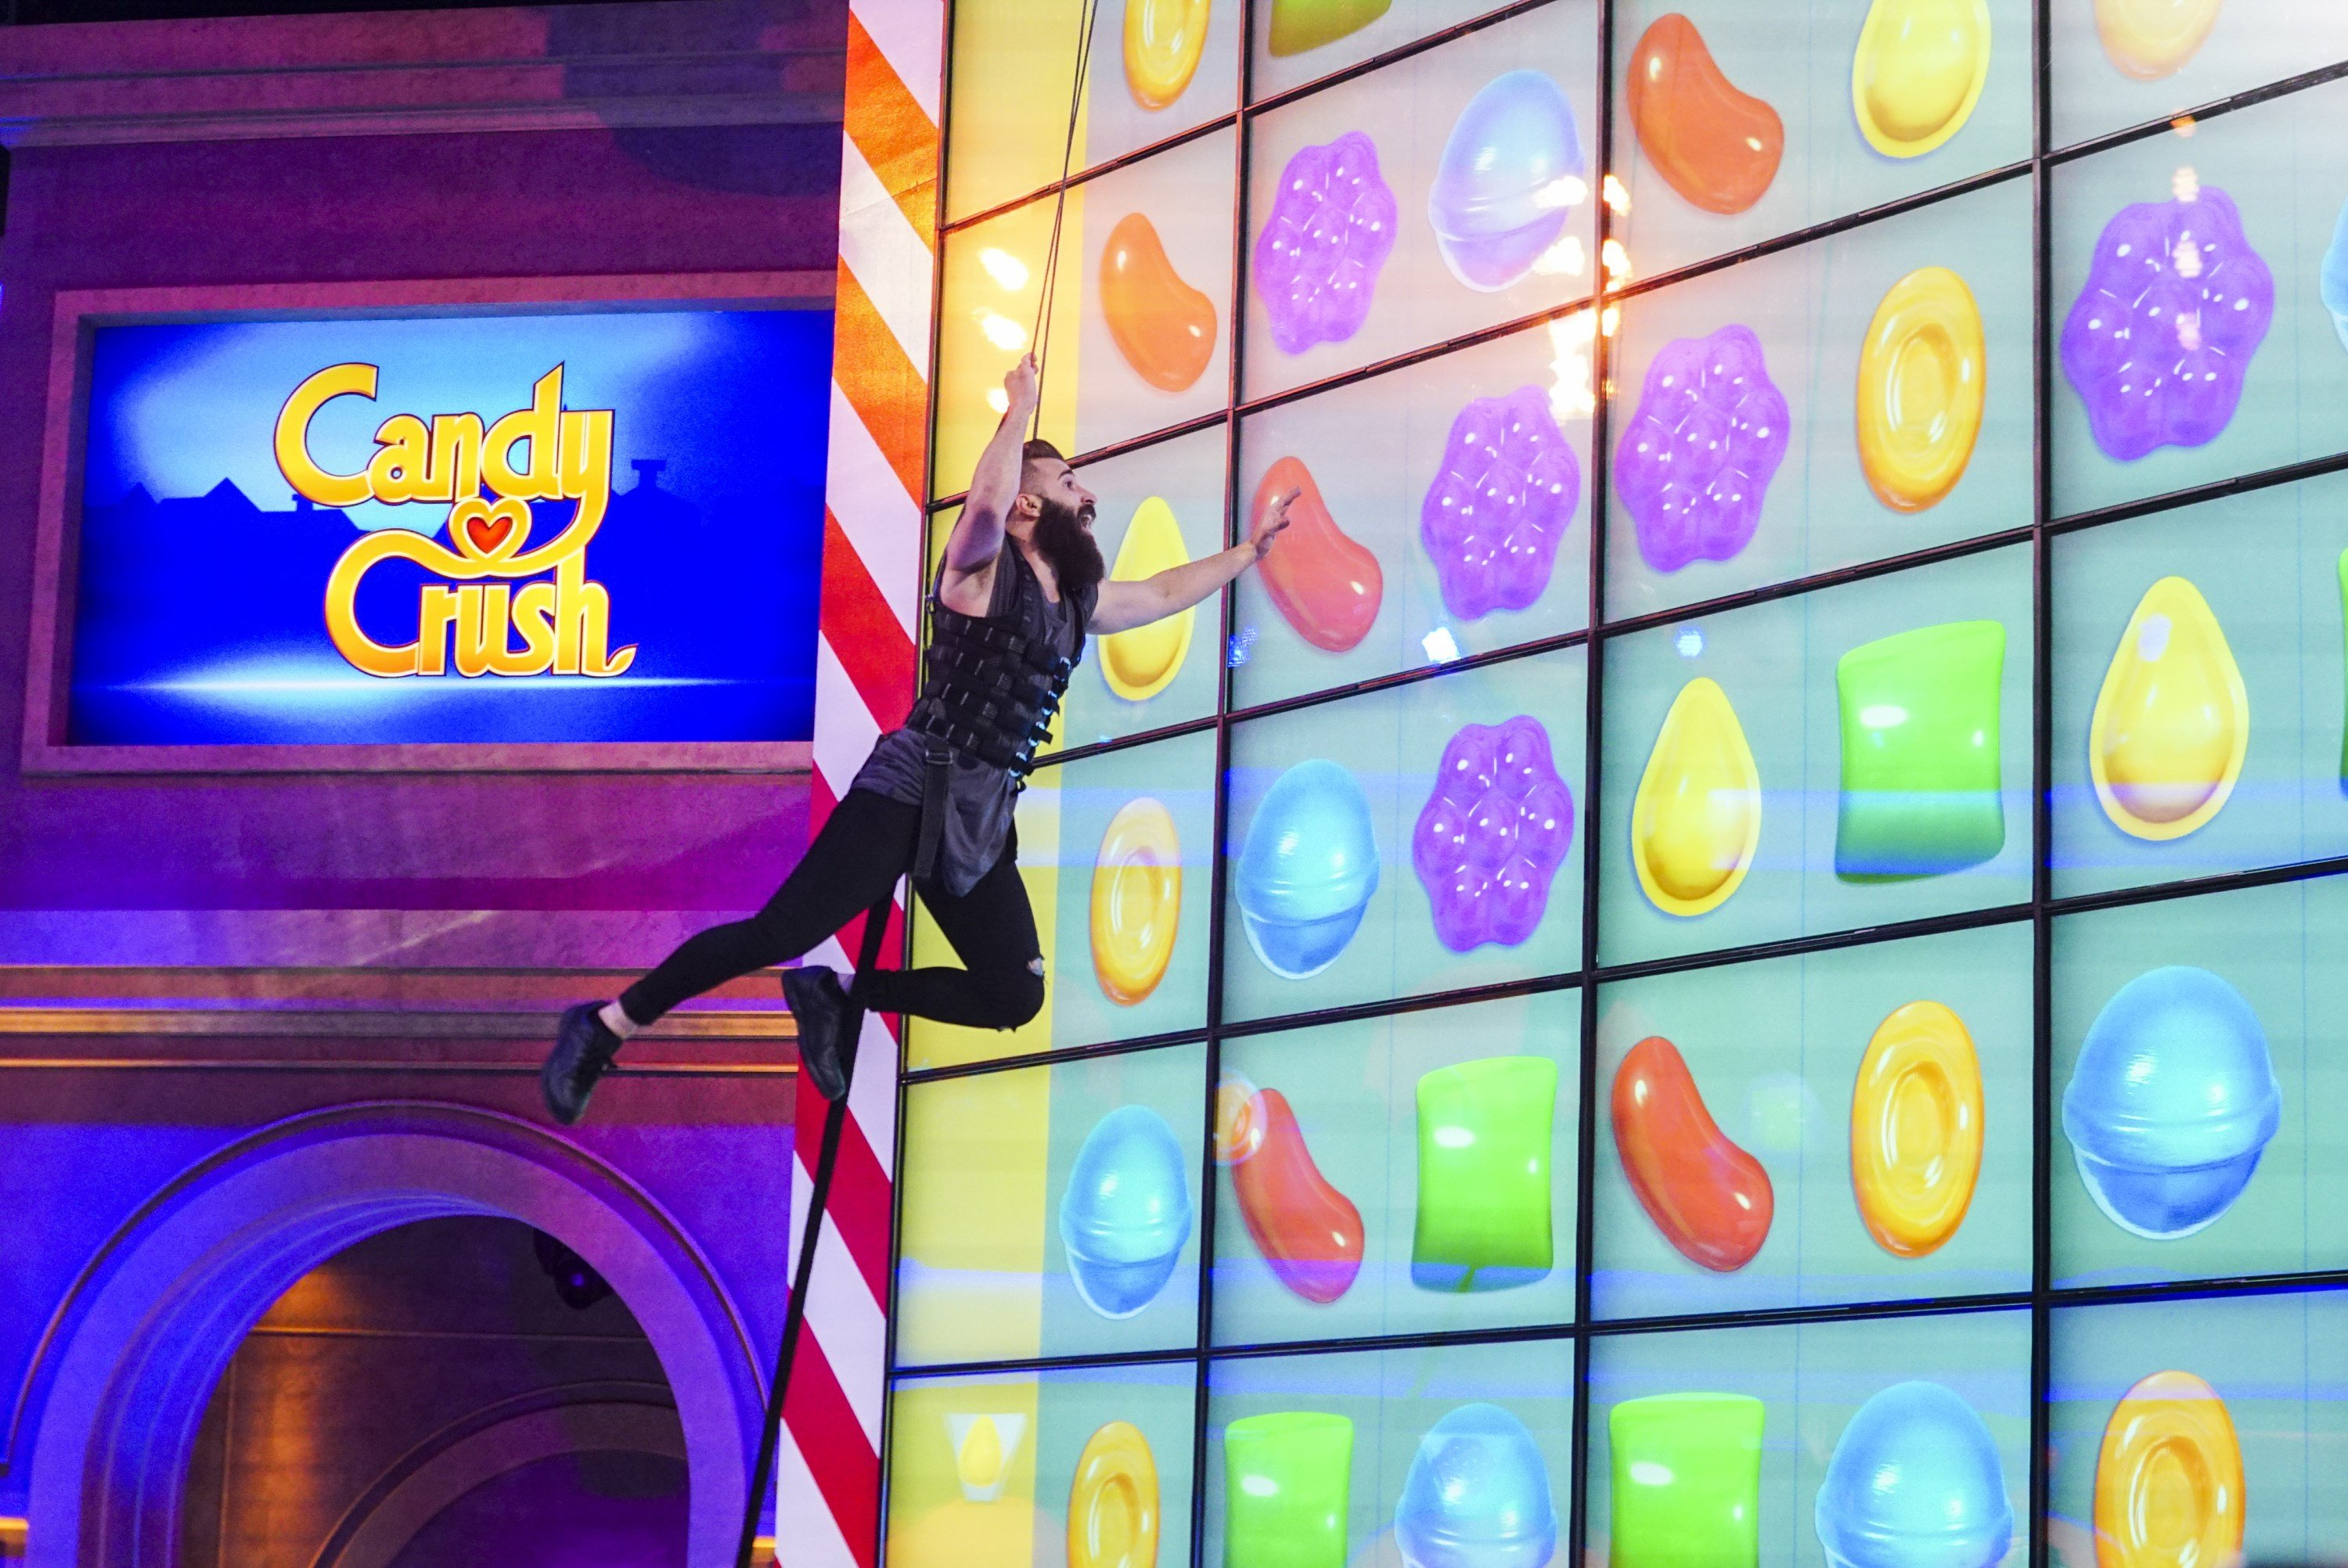 """This image released by CBS shows Paul Abrahamian, a contestant on """"Big Brother 18"""" and competing in the new game show, """"Candy Crush,"""" premiering, Sunday, July 9 at 9 p.m. ET on CBS. (Sonja Flemming/CBS via AP)"""